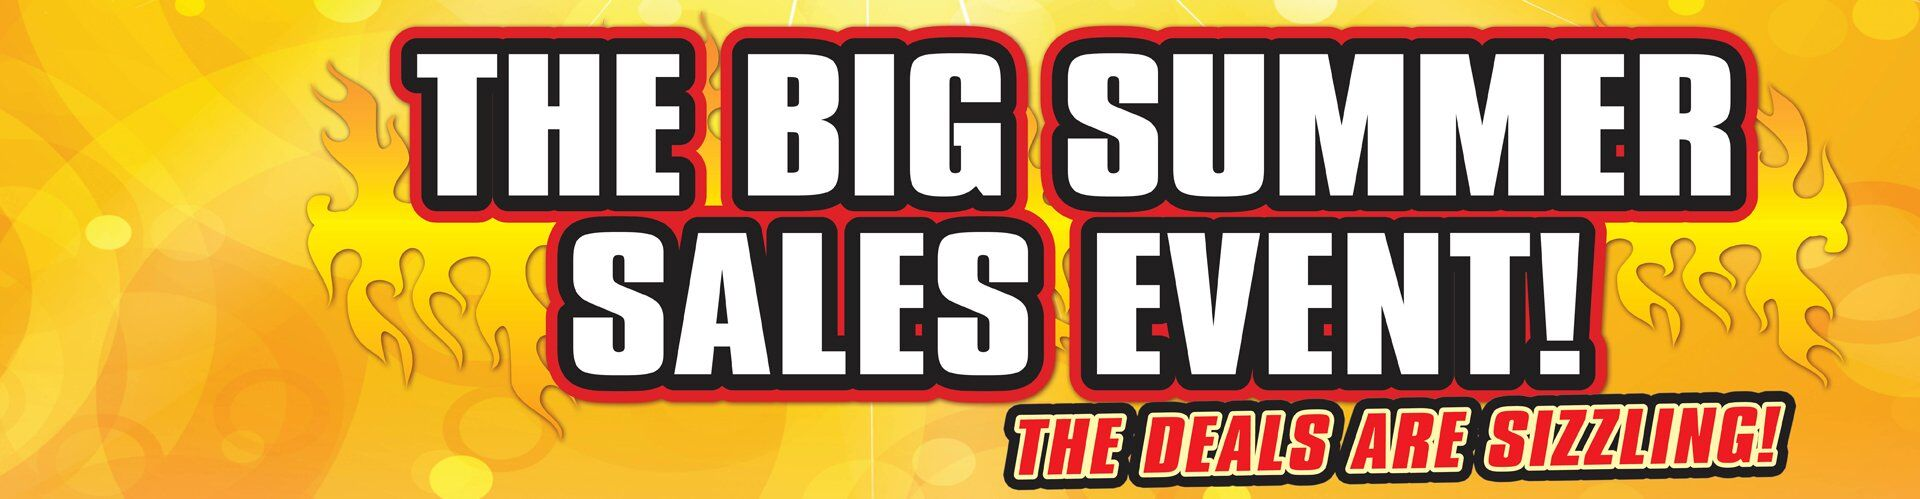 The BIG Summer Sales Event!